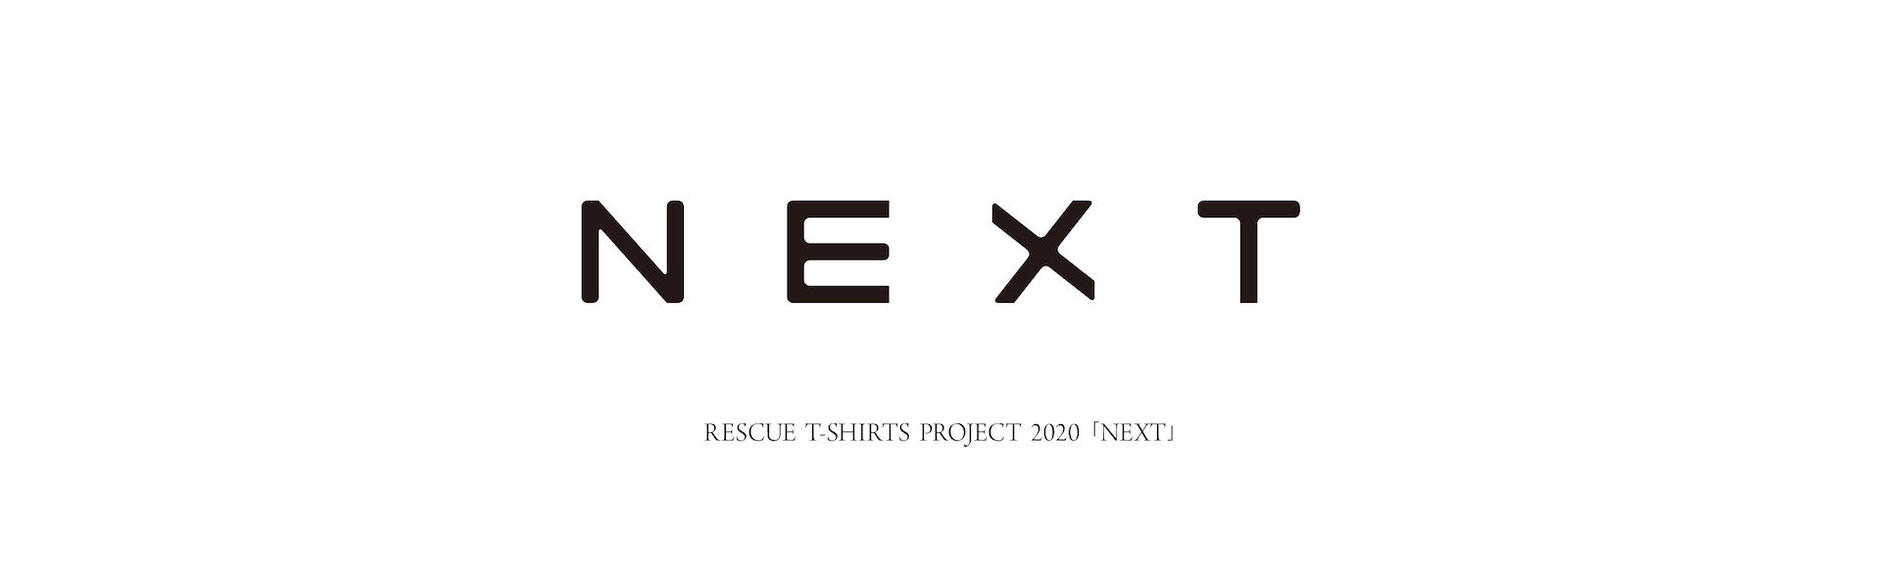 RESCUE T-SHIRTS PROJECT 2020「NEXT」ONLINE STORE